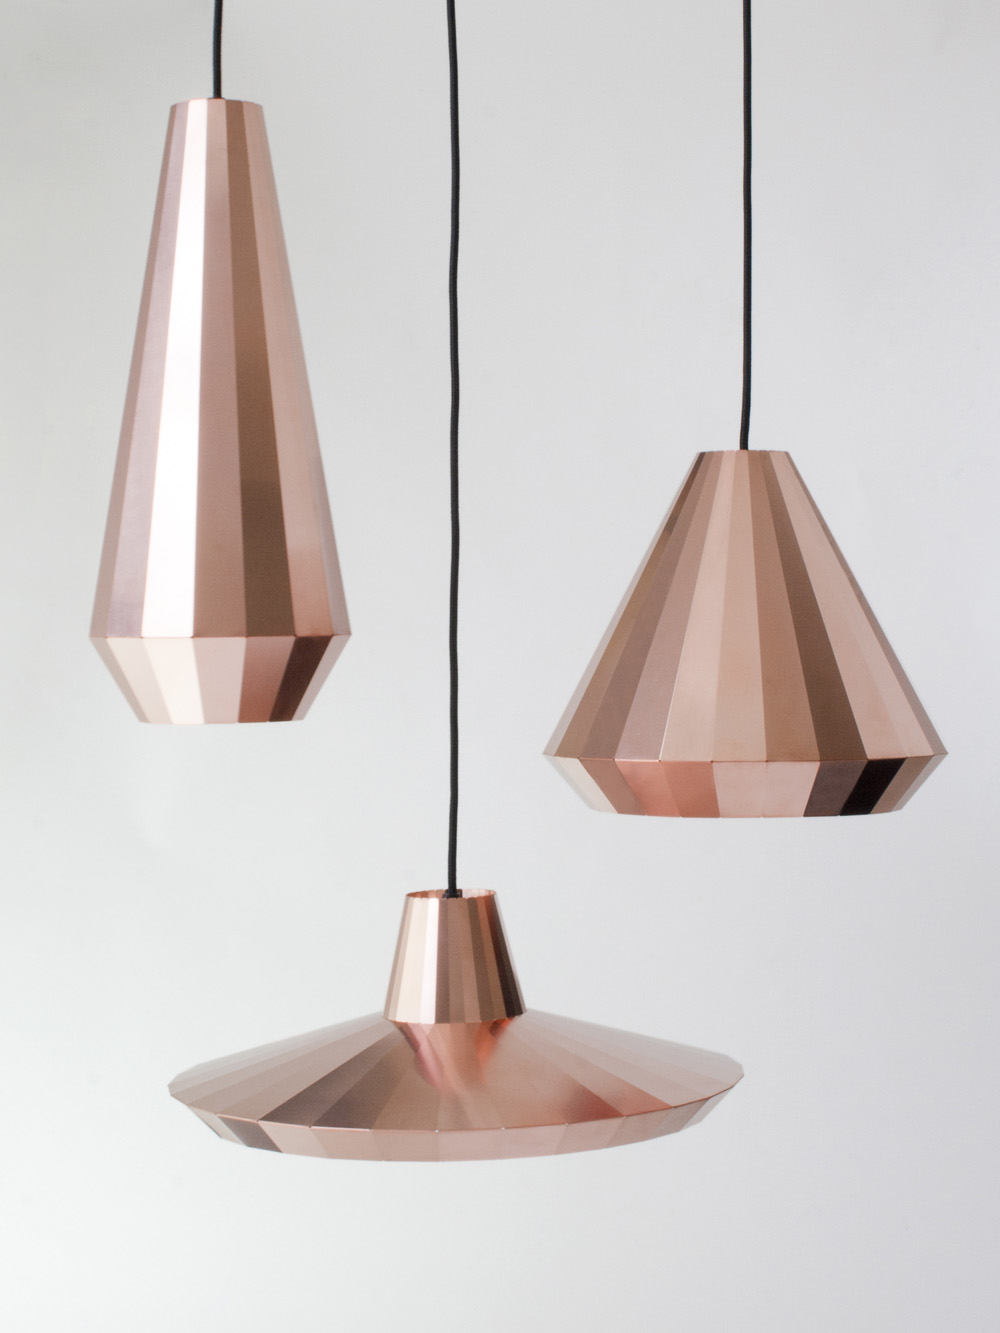 Vij5-Copper-Lights-02-2014-image-by-David-Derksen-Design RS.jpg